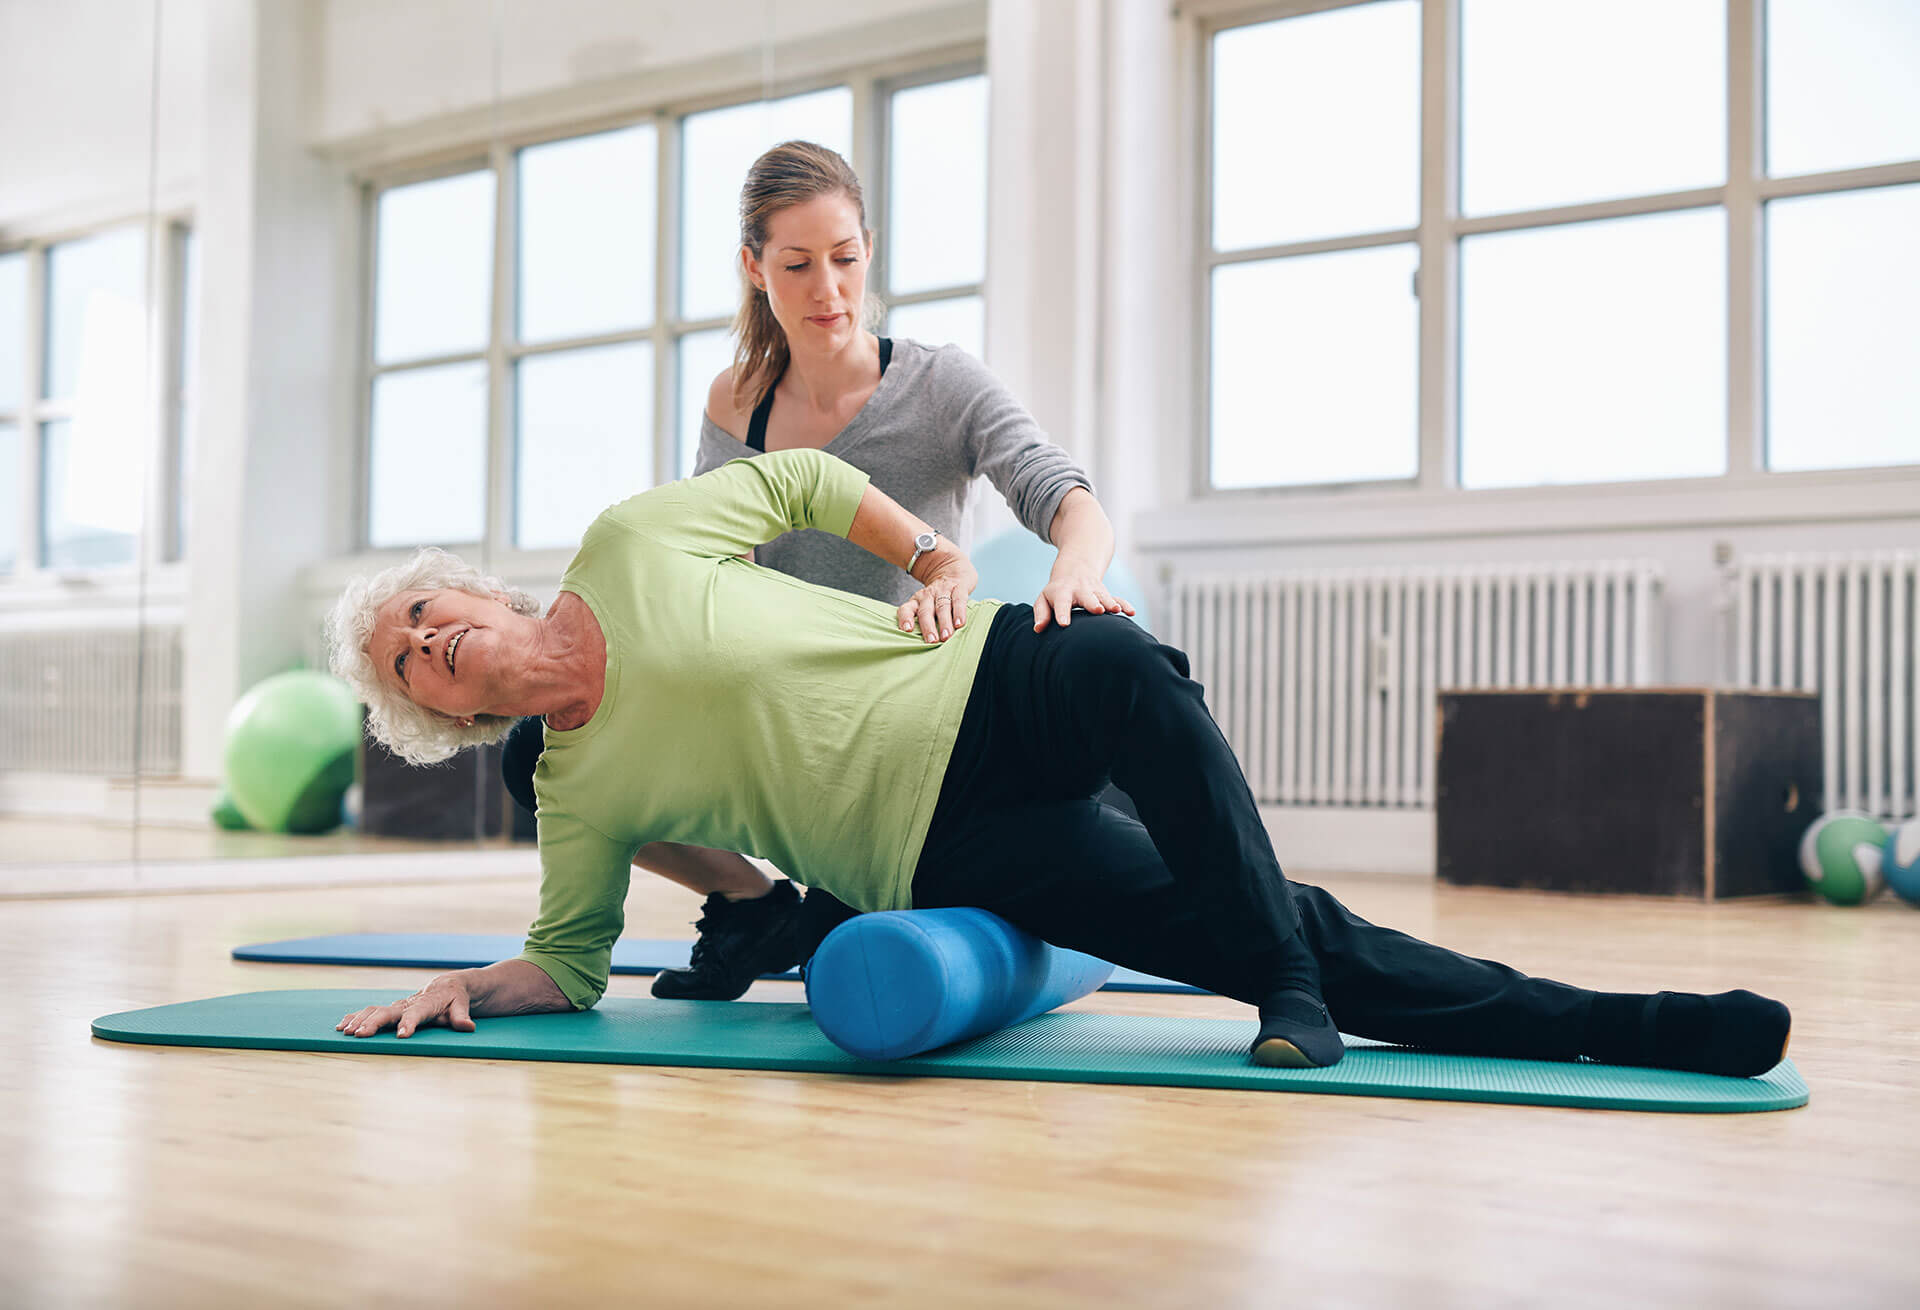 Physical therapist helping woman use foam roller